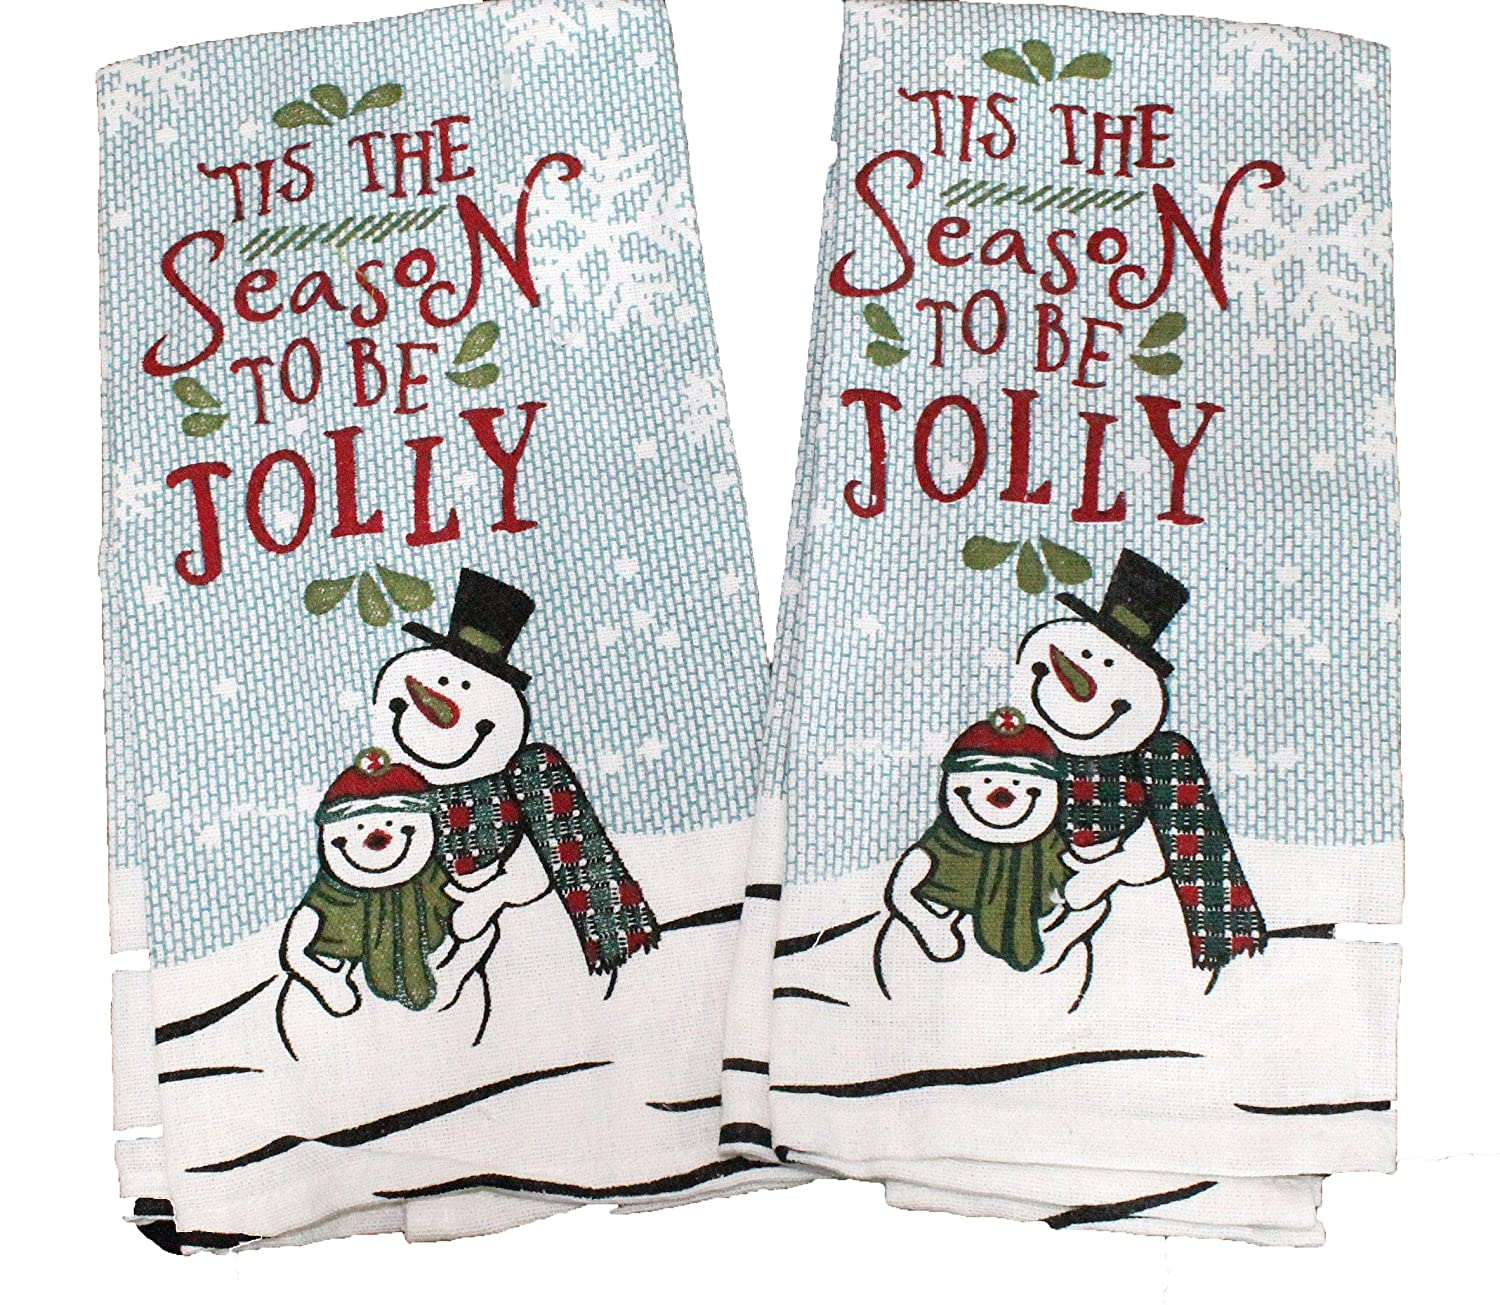 2 Pc Tis The Season Snowman Kitchen Towel Set Tapestry Design Winter Snowman Decor Set - Holiday Kitchen Towel Set - Comes in an organza bag for giving!